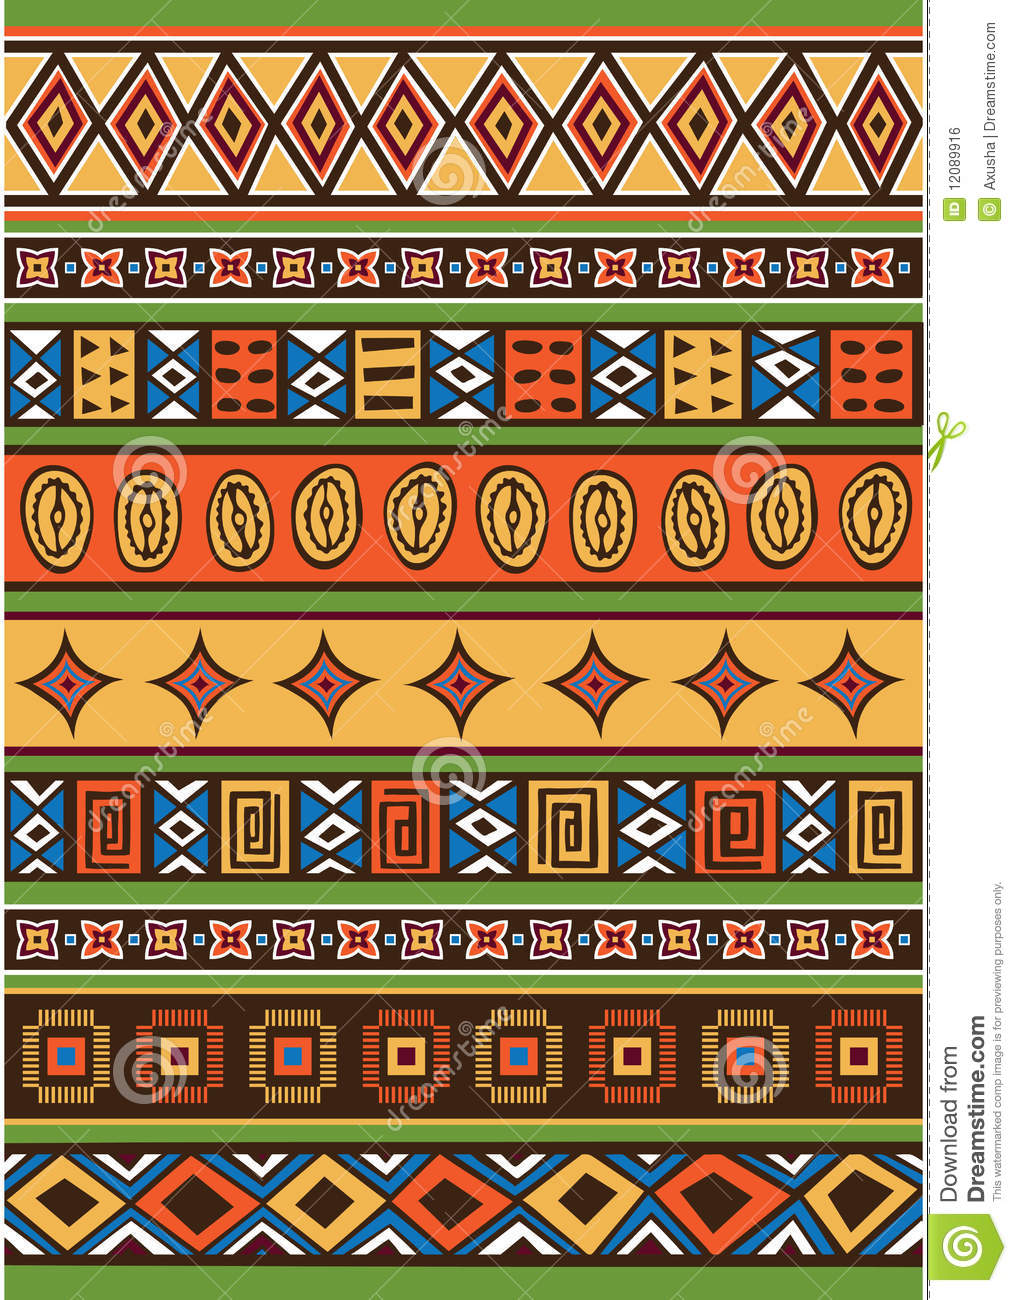 Wp furthermore Il Xn A G also Ru Navajo Rug Yei Weaving By Navajo Artist Ruby White Photo furthermore D D B further Galleon No Mar   Tempestade. on b